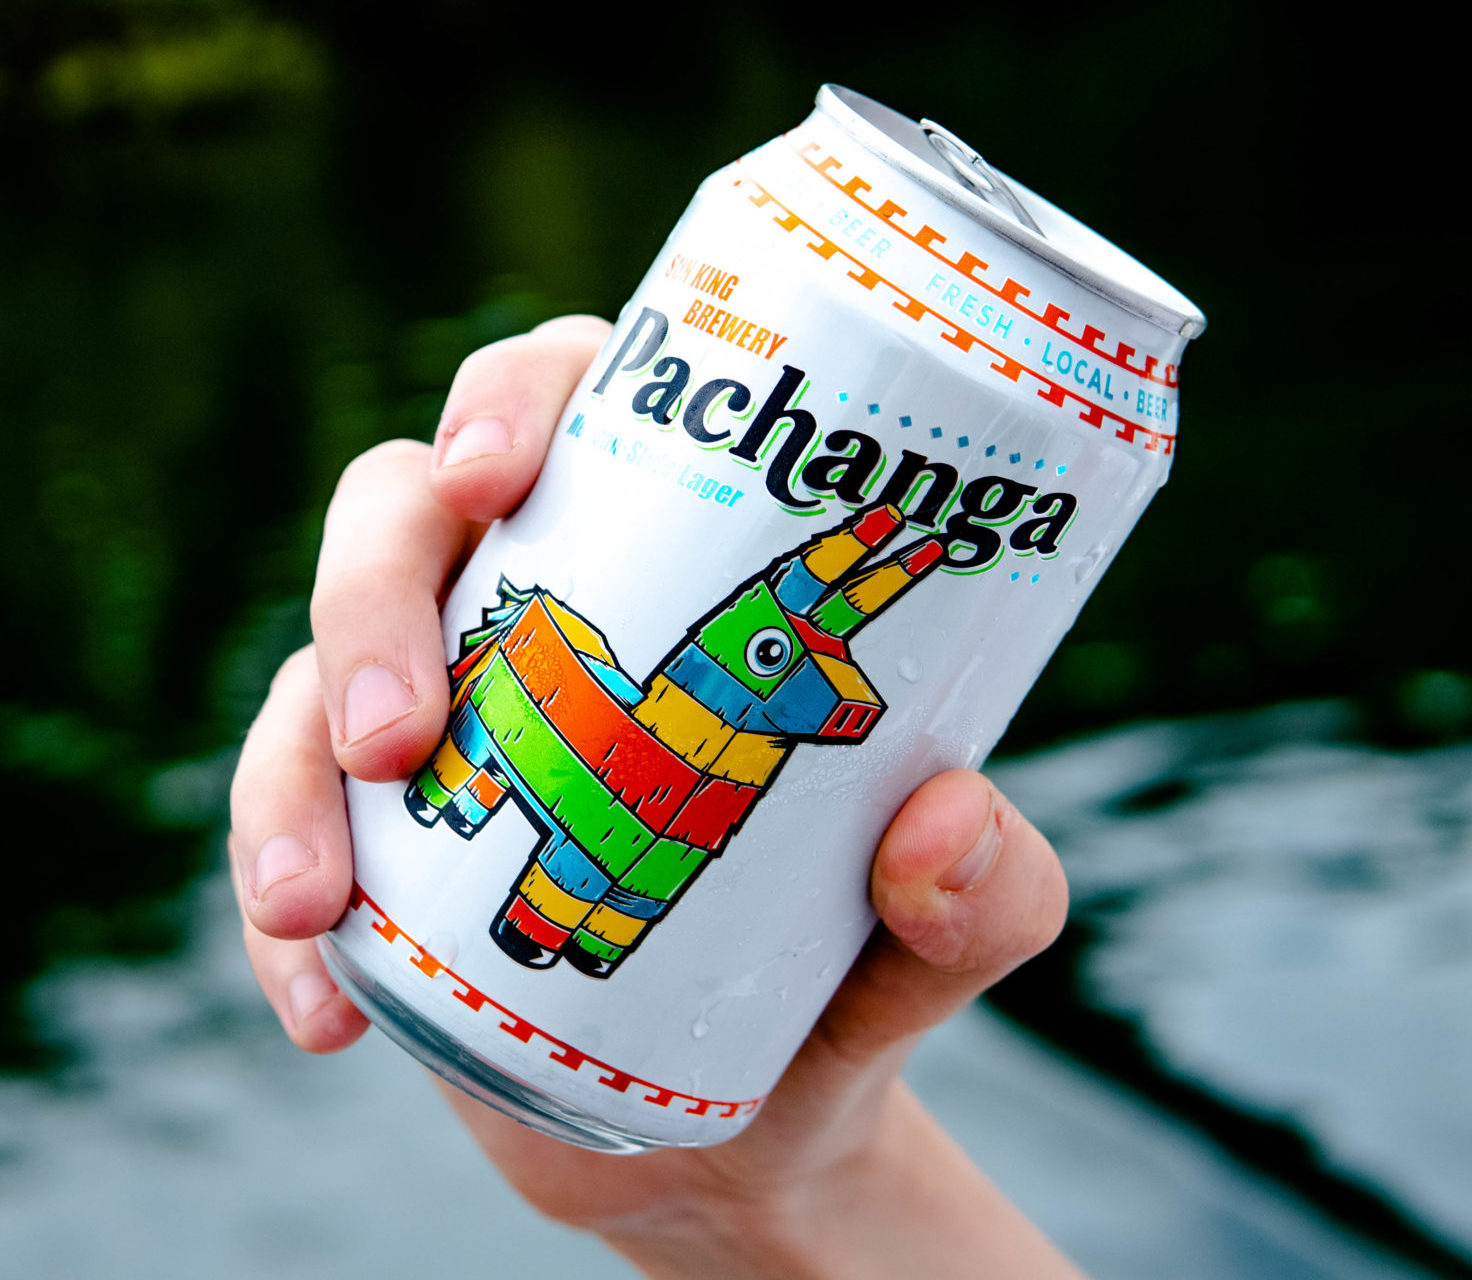 a can of Pachanga from Sun King